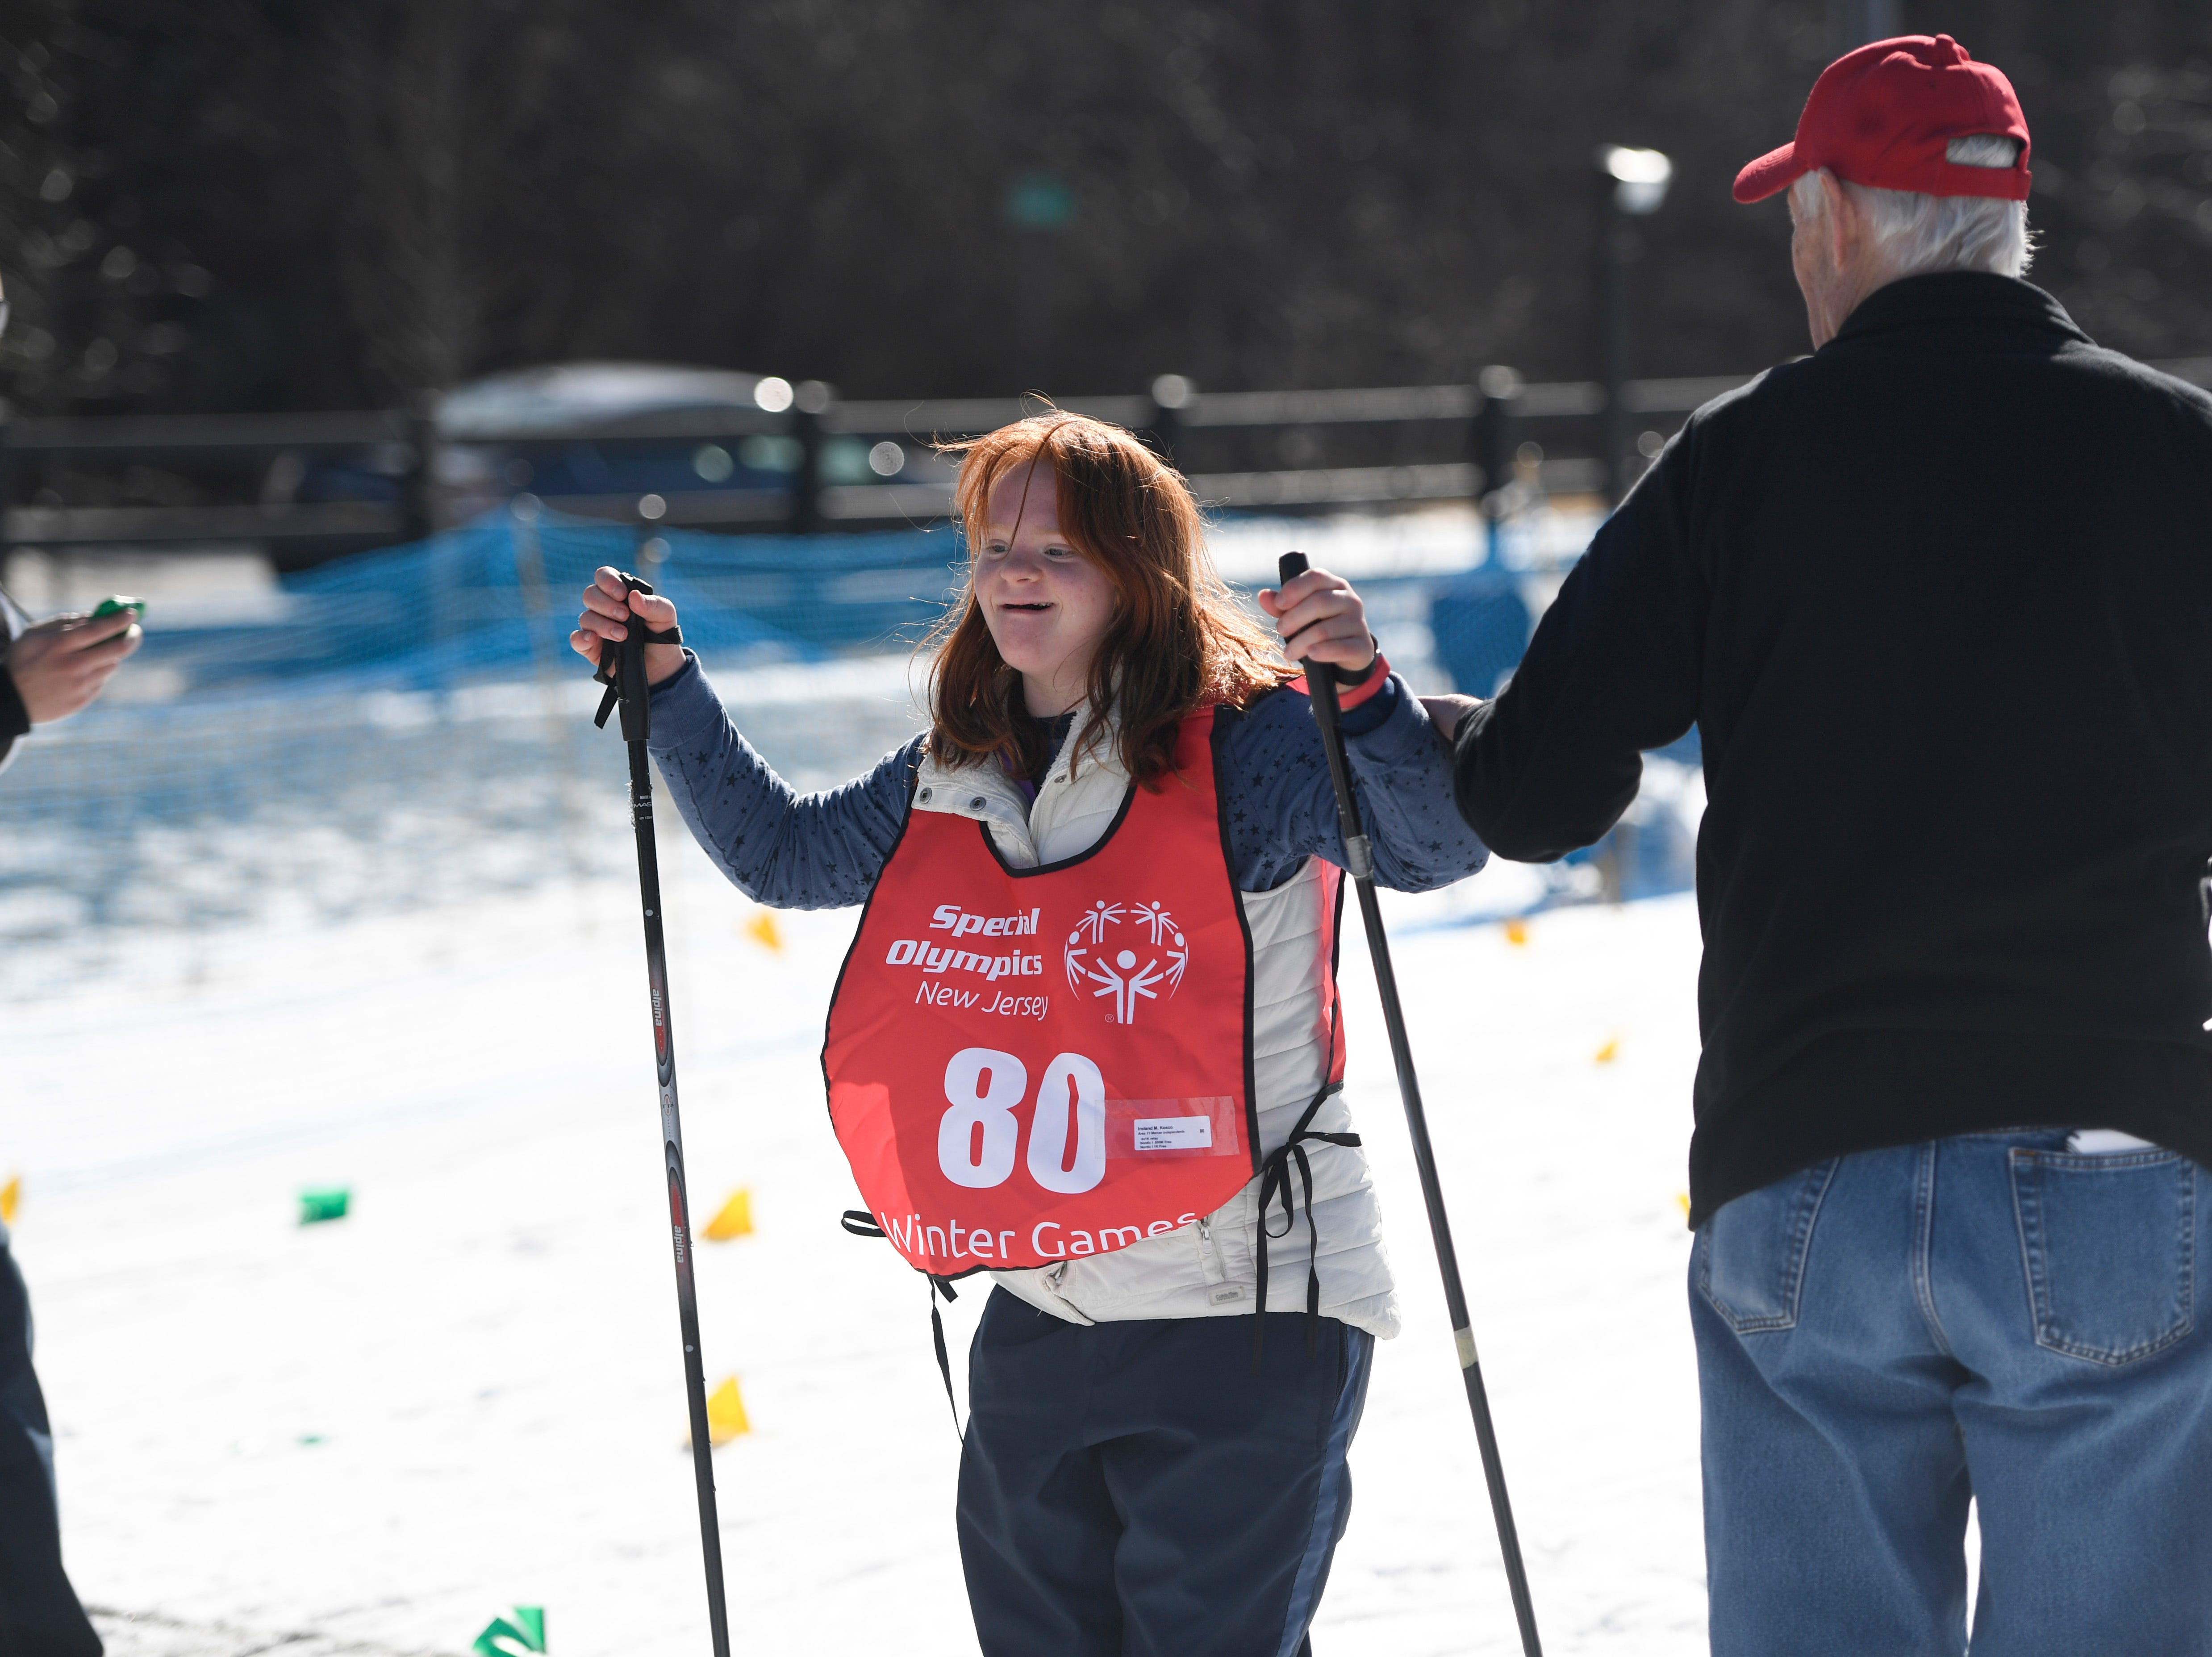 Ireland Kosco of Cream Ridge finishes the 1K cross-country skiing final during the Special Olympics New Jersey 2019 Winter Games on Tuesday, Feb. 5, 2019, in Vernon.